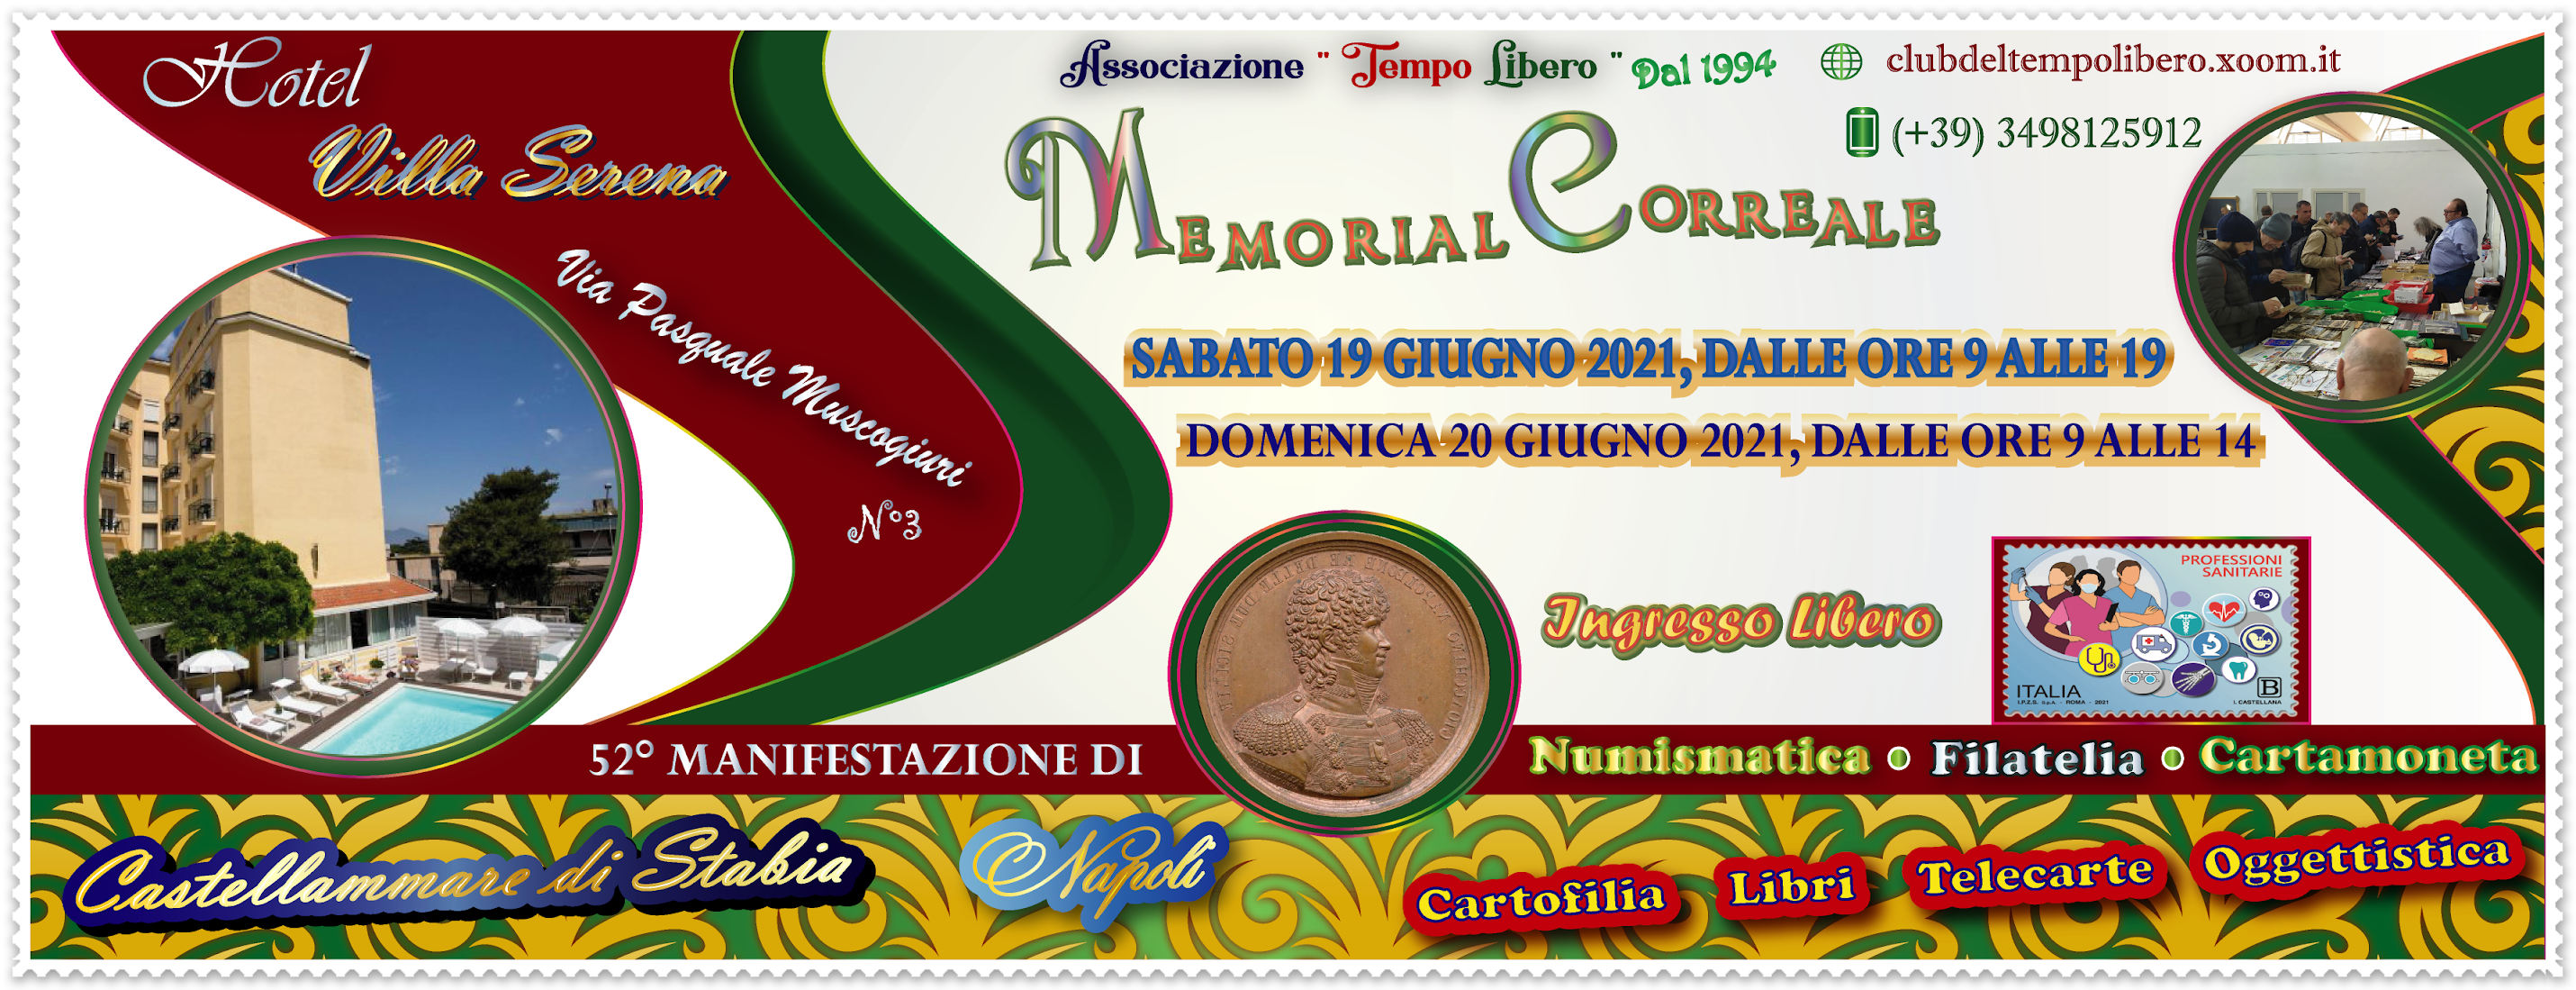 Flyer%2BXVI%2BMemorial%2BCorreale-3.png